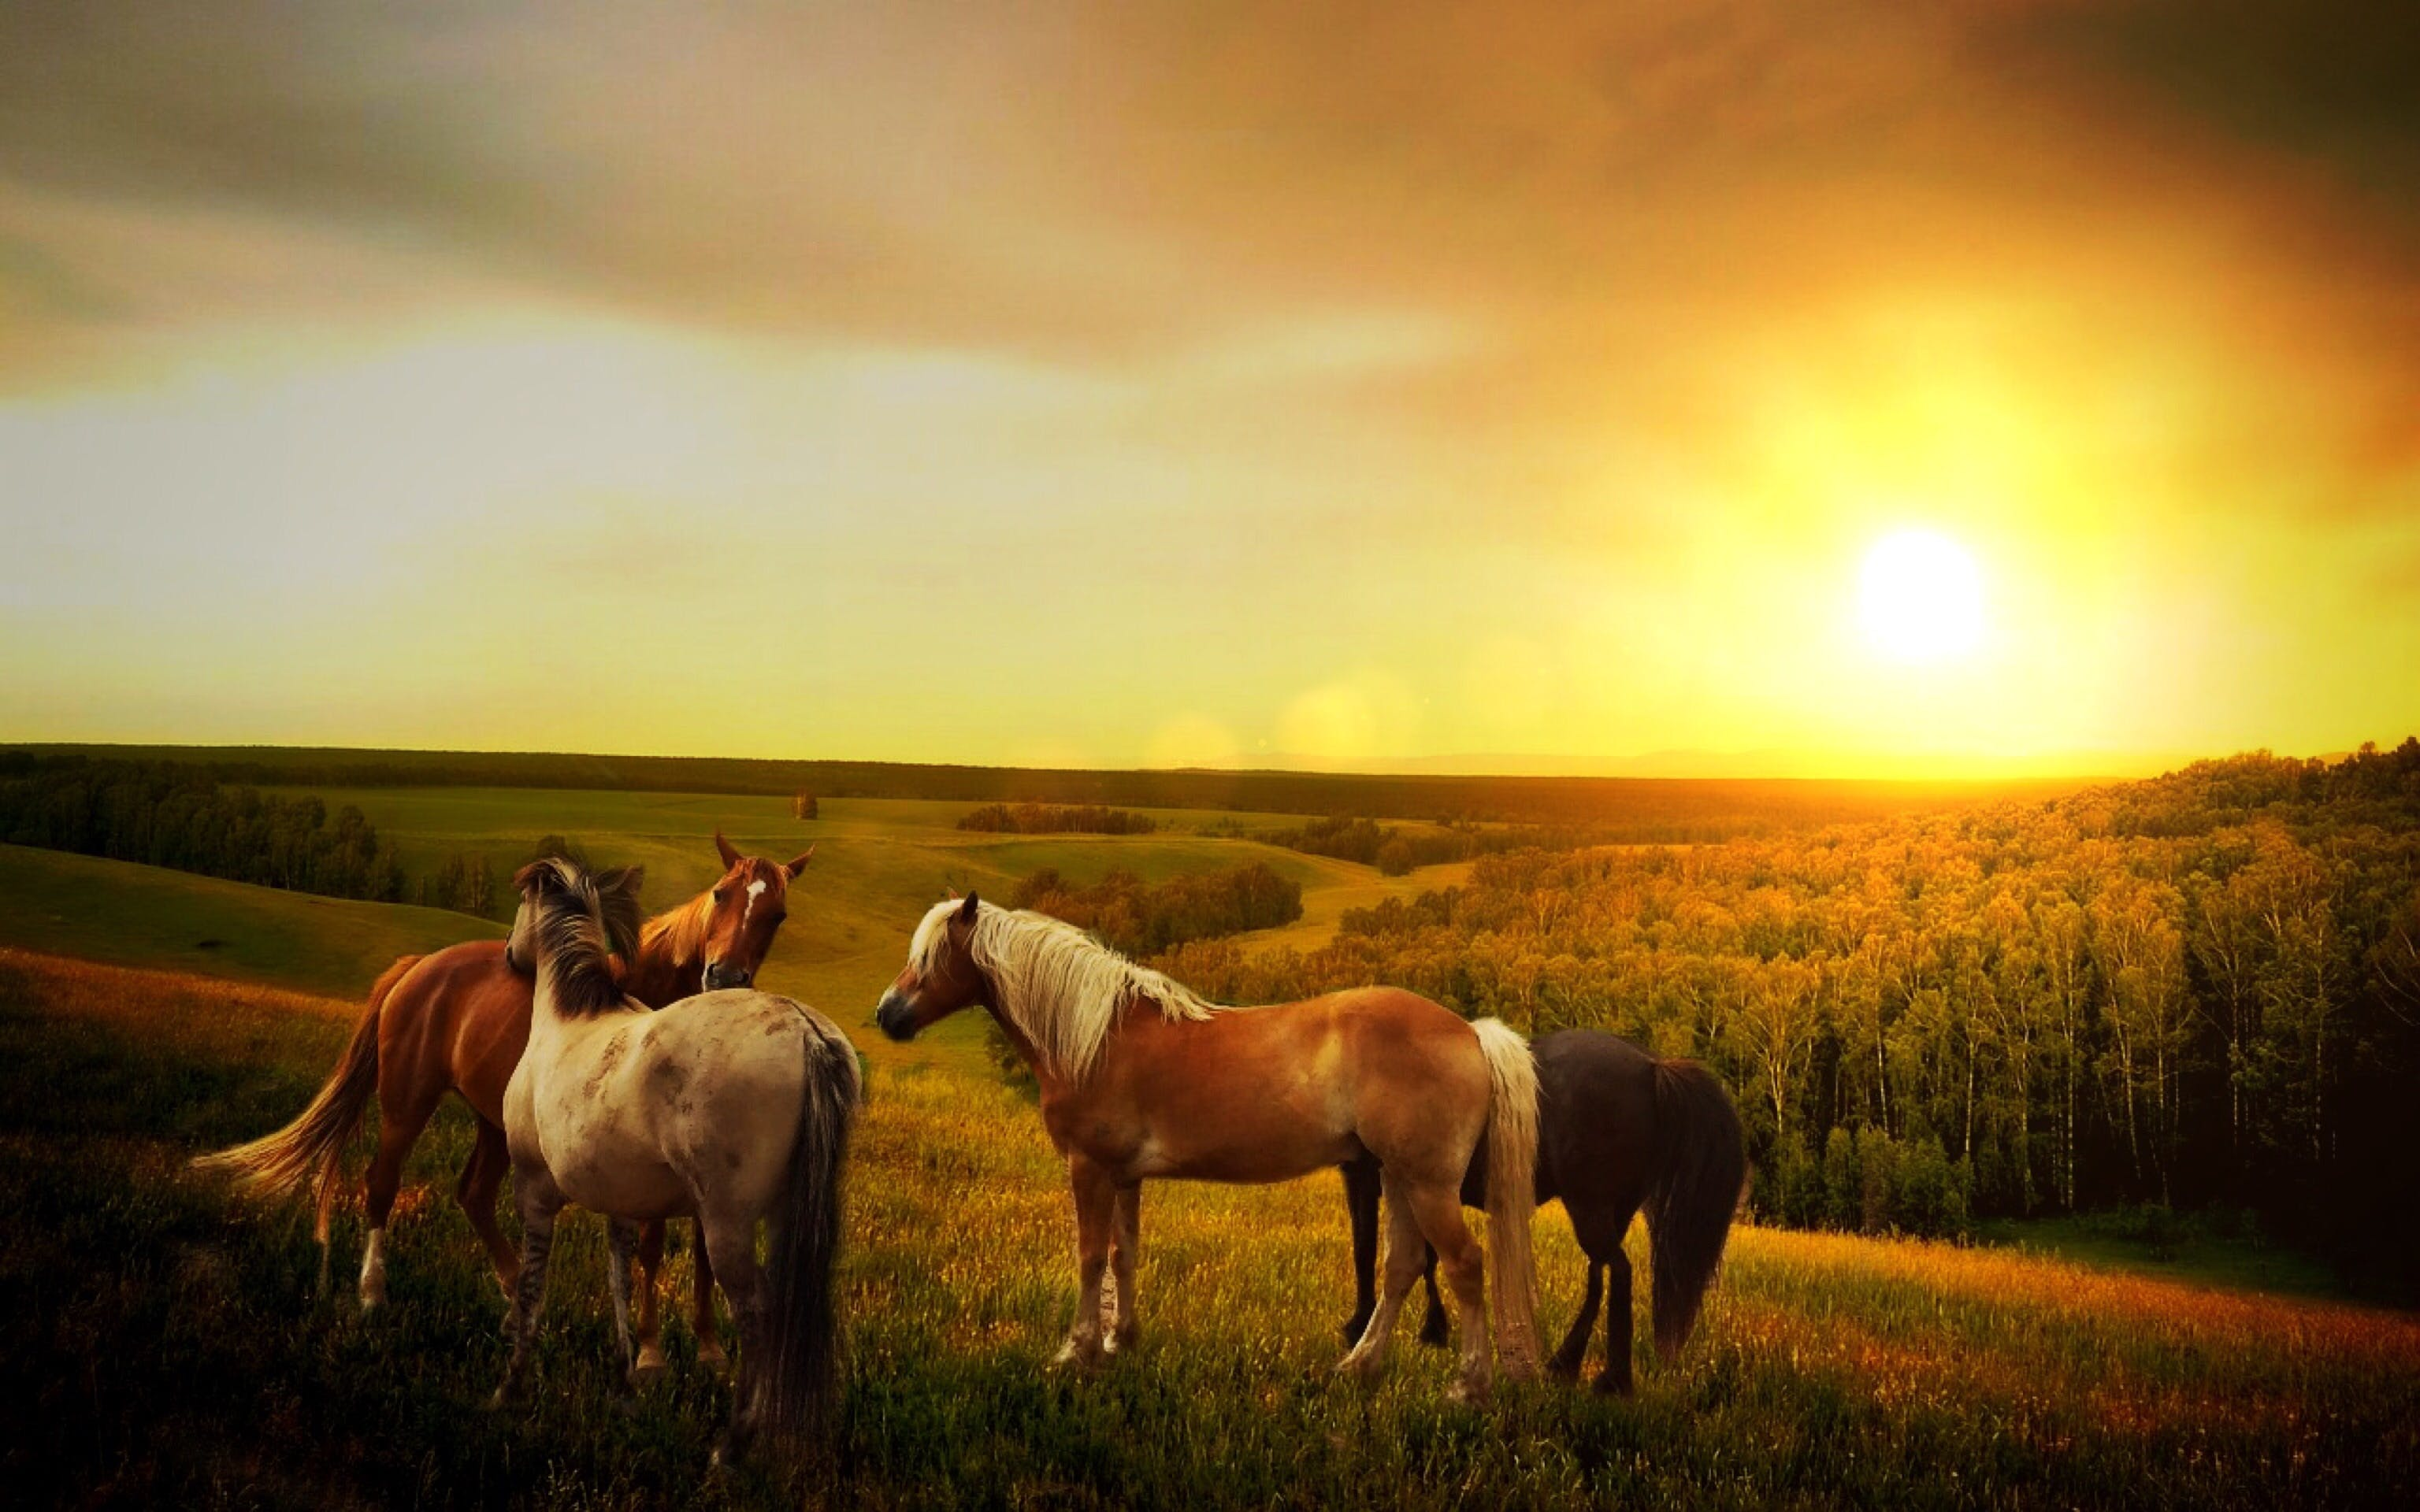 Four Brown-white-and-black Horses